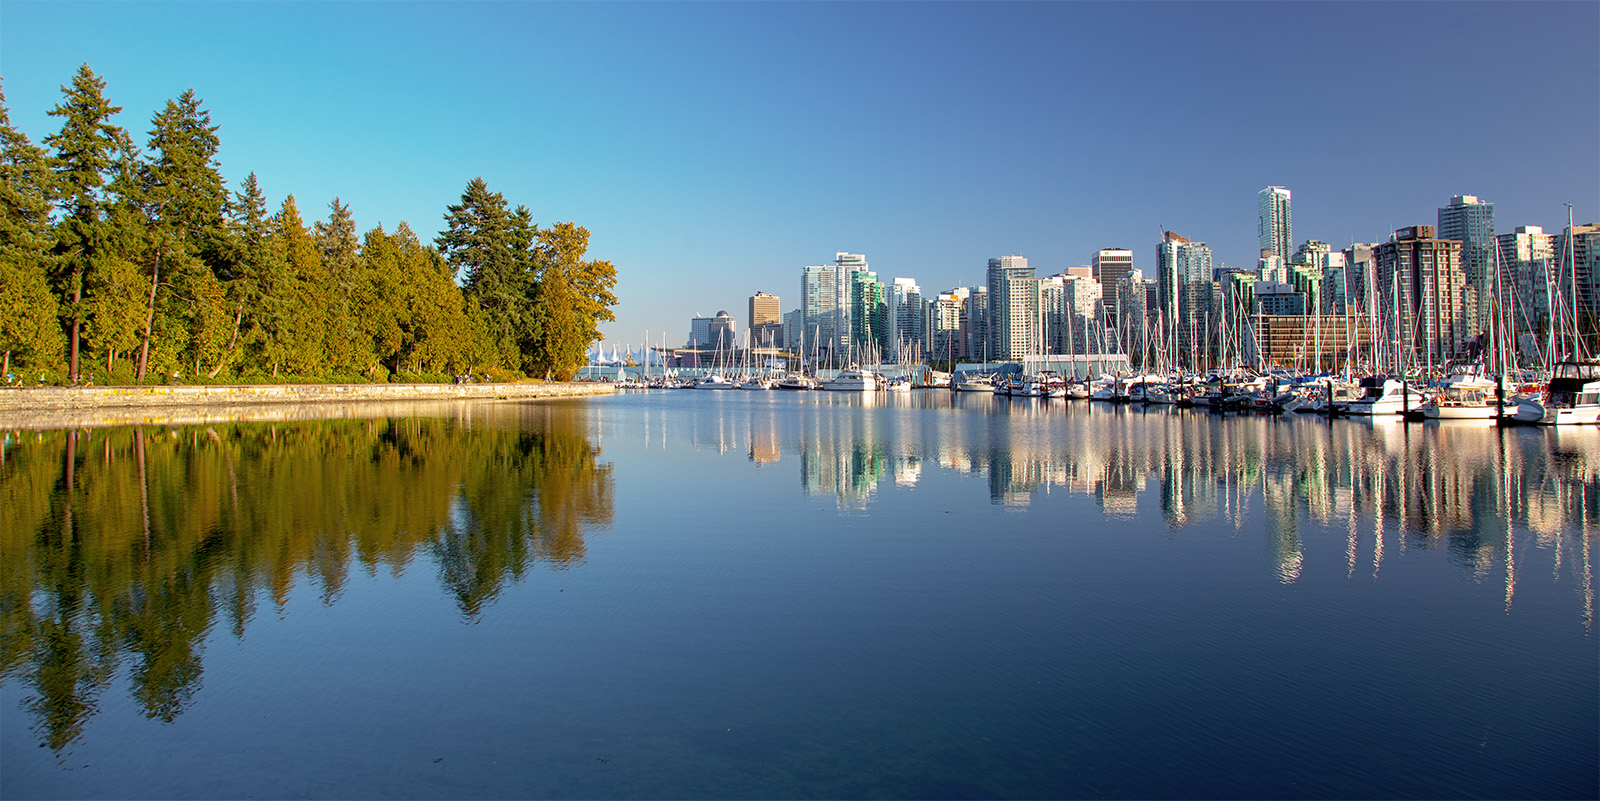 VANCOUVER - DOWNTOWN, WATERFRONT AND STANLEY PARK WITH REFELCTIONS